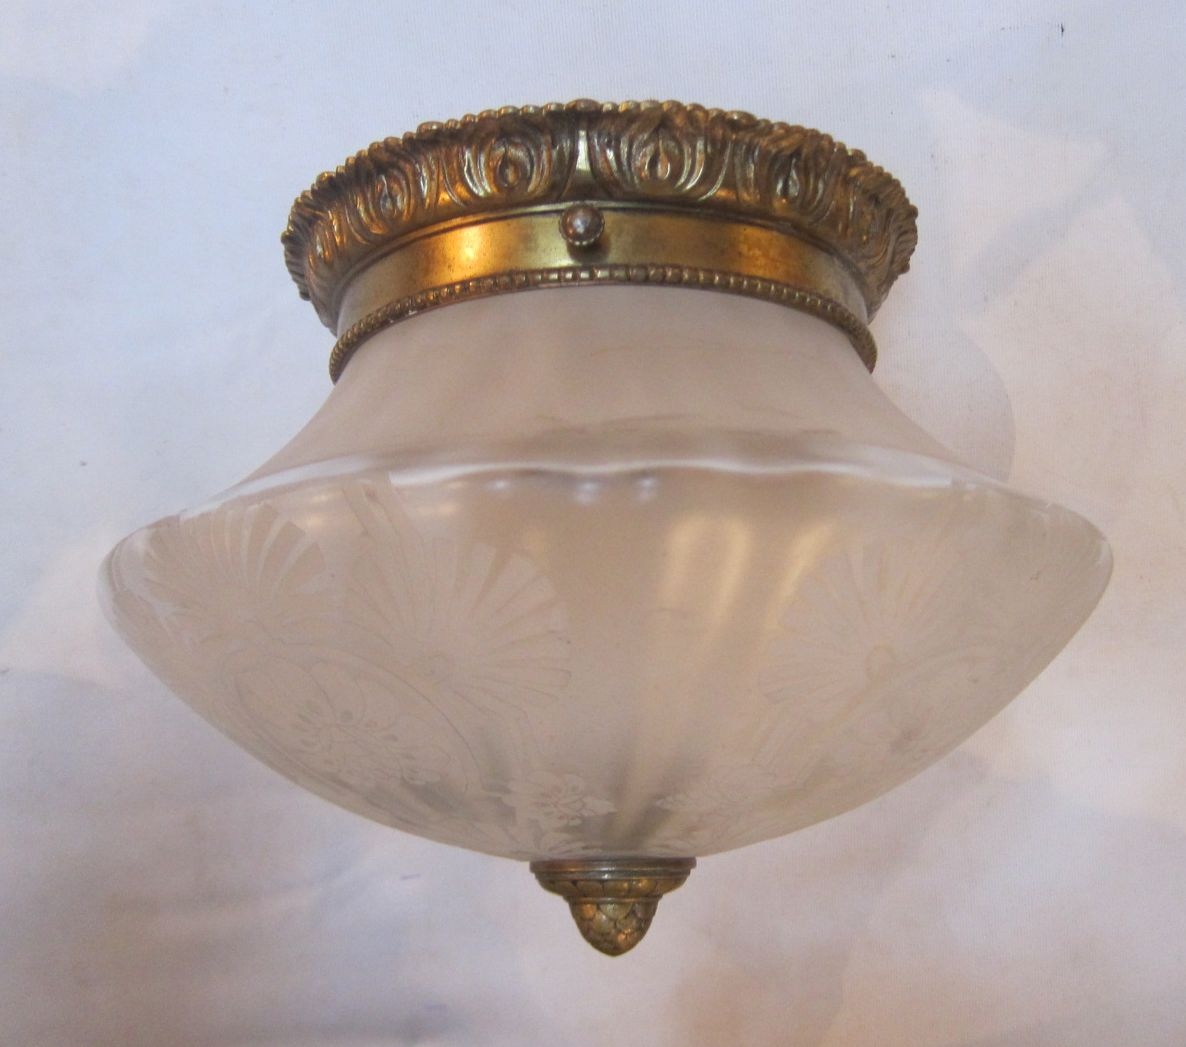 English Close Fitting Ceiling Light In The Original Gilt Brass Finish Complete With Superb Period Glass